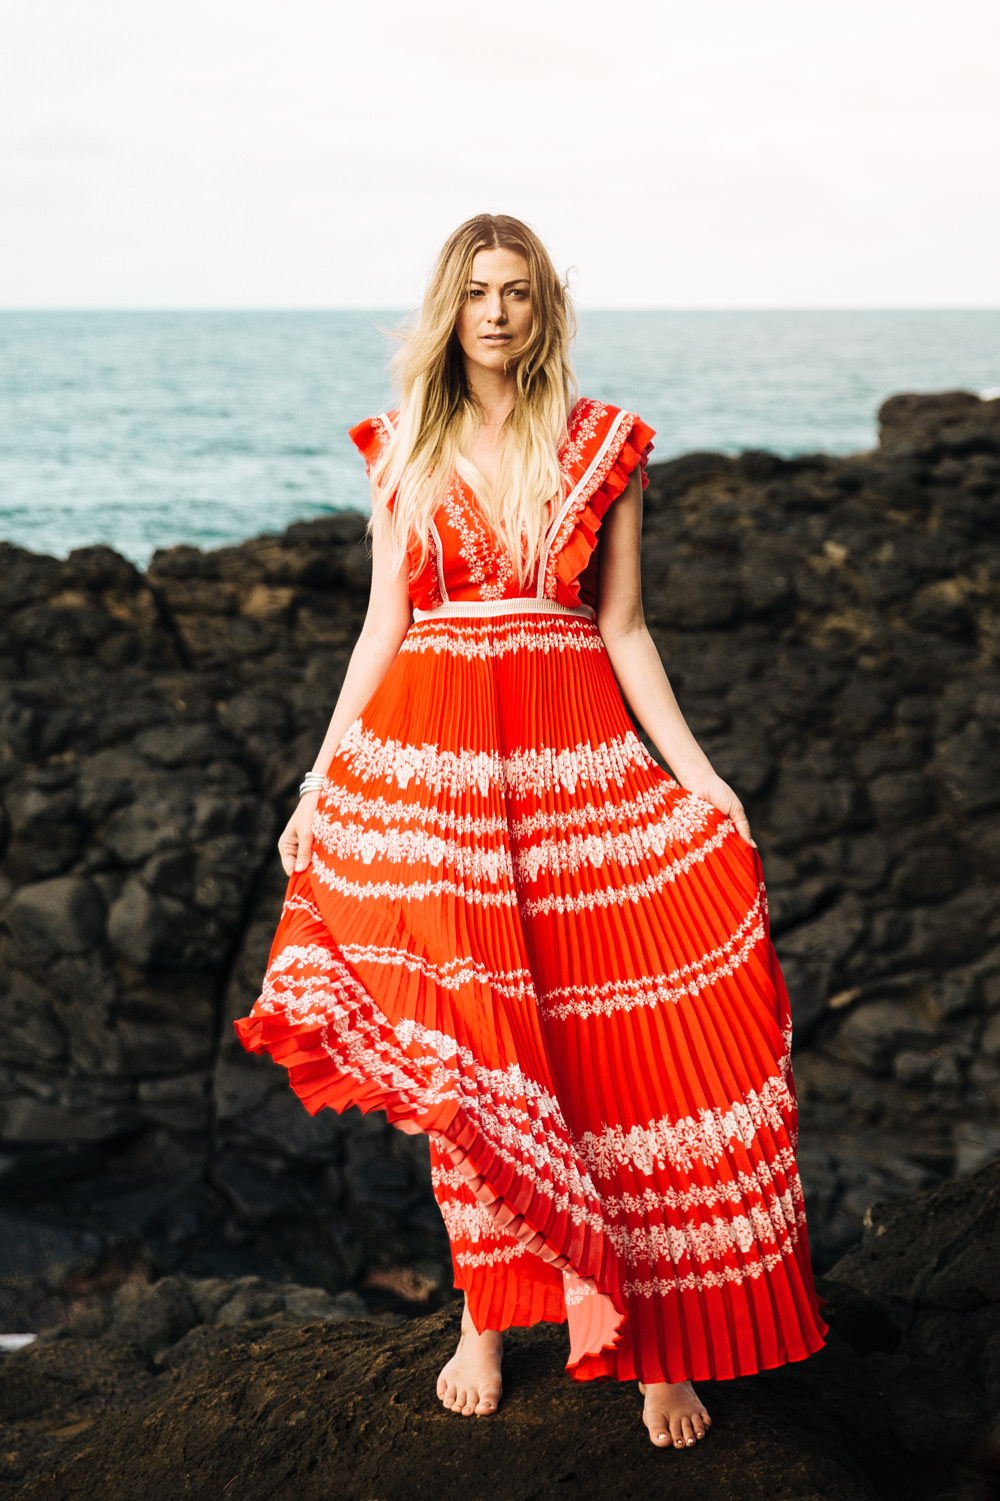 Dash of Darling wears a red Self Portrait maxi dress at Queens bath in Kauai, Hawaii while staying at the St. Regis Princeville Resort.